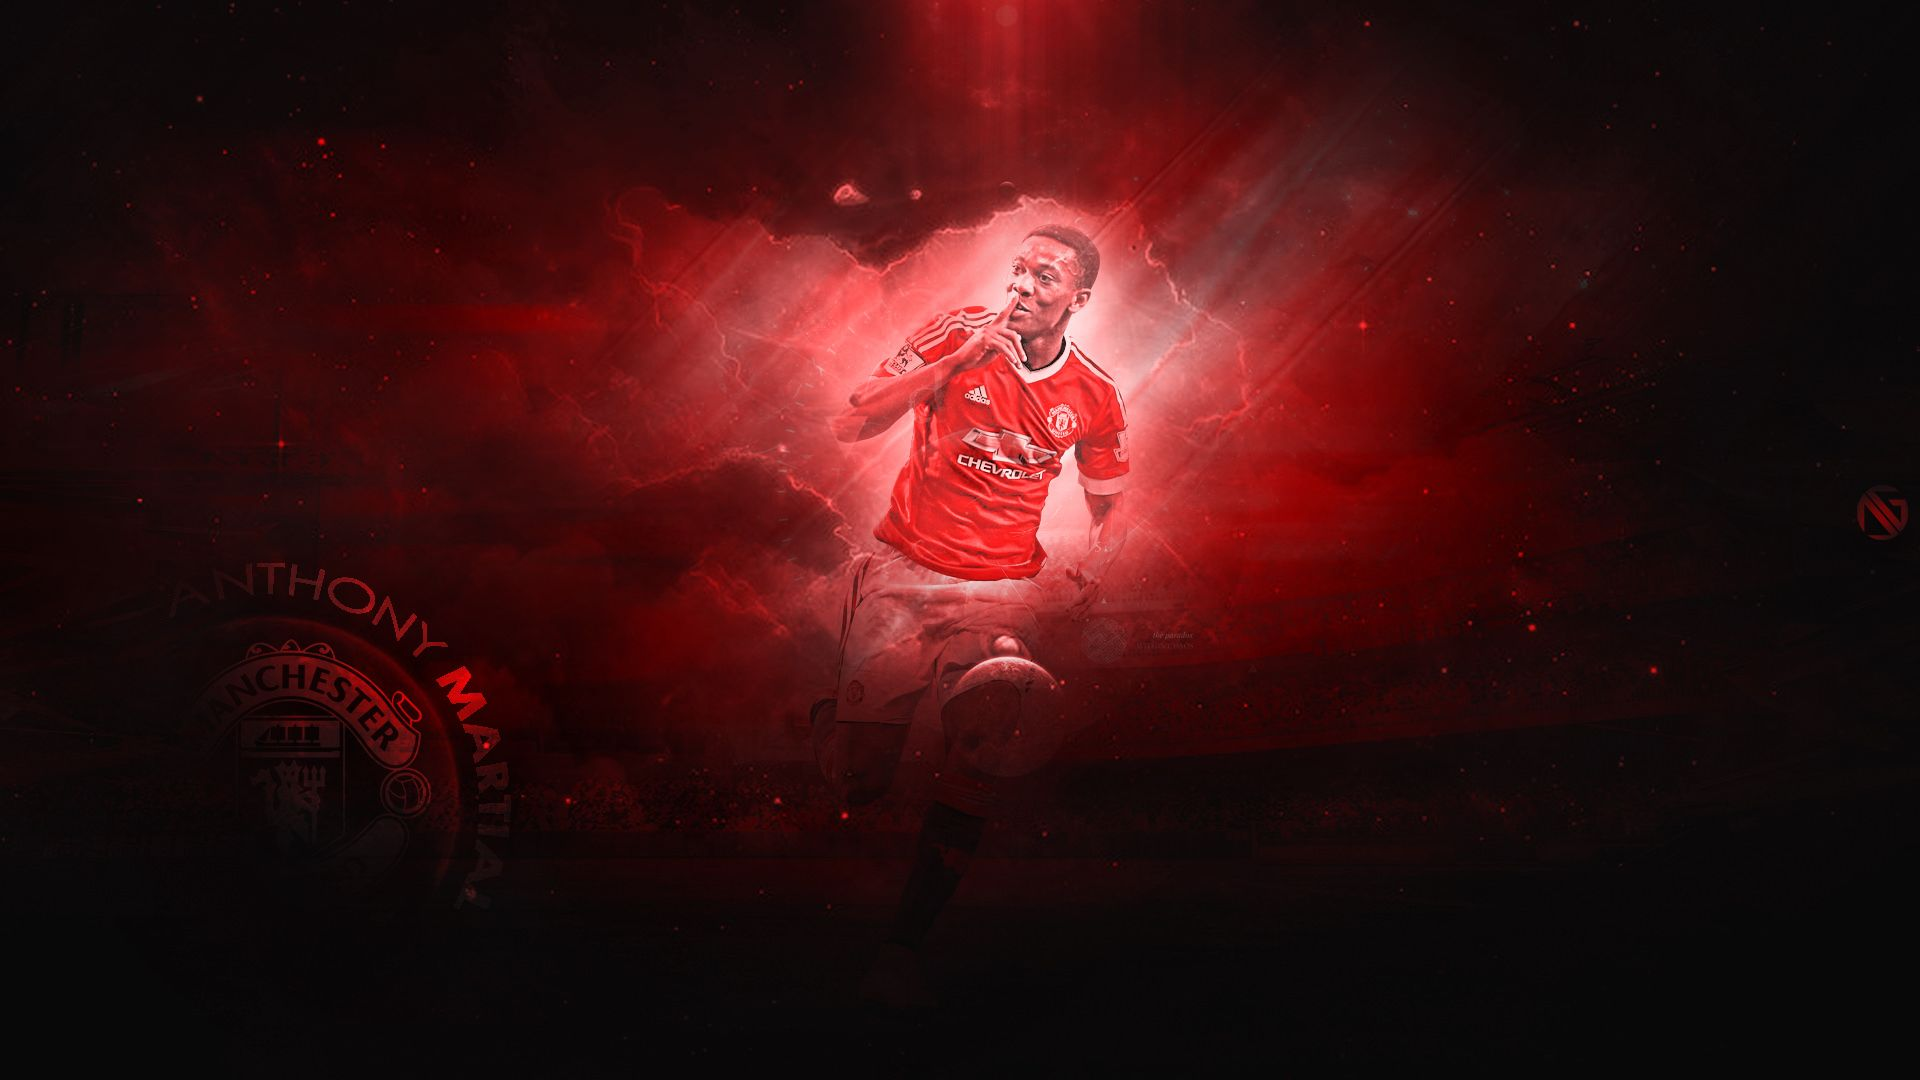 Anthony Martial Manchester United Wallpaper Football Wallpapers Hd Manchester United Wallpaper Football Wallpaper Wallpaper